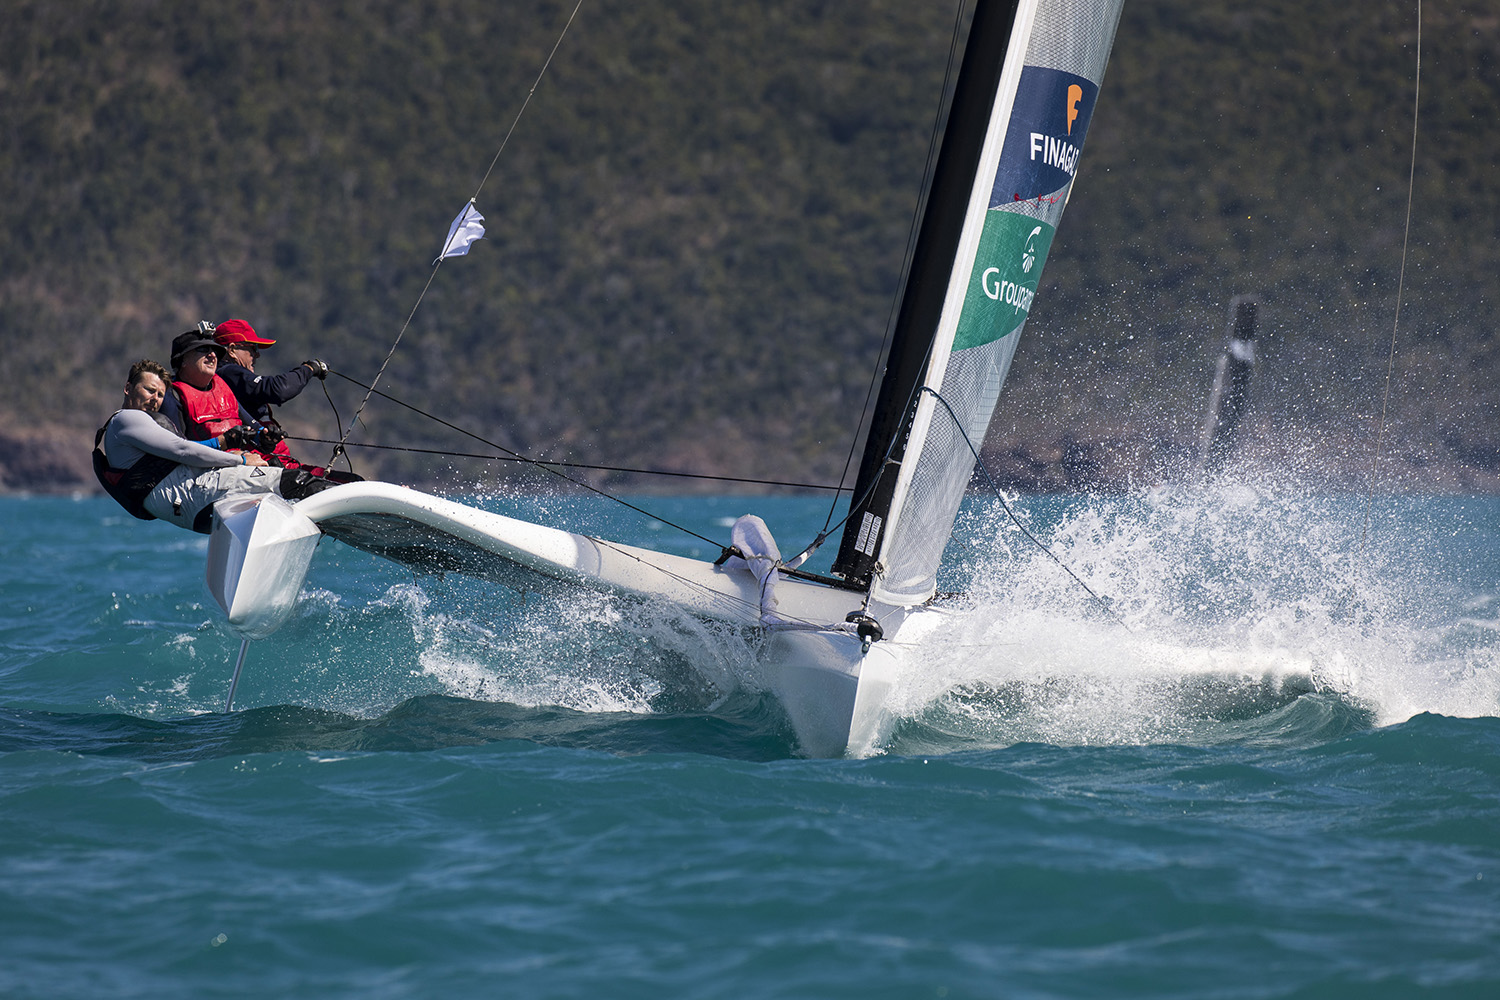 Airlie Beach Race Week image by Andrea Francolini